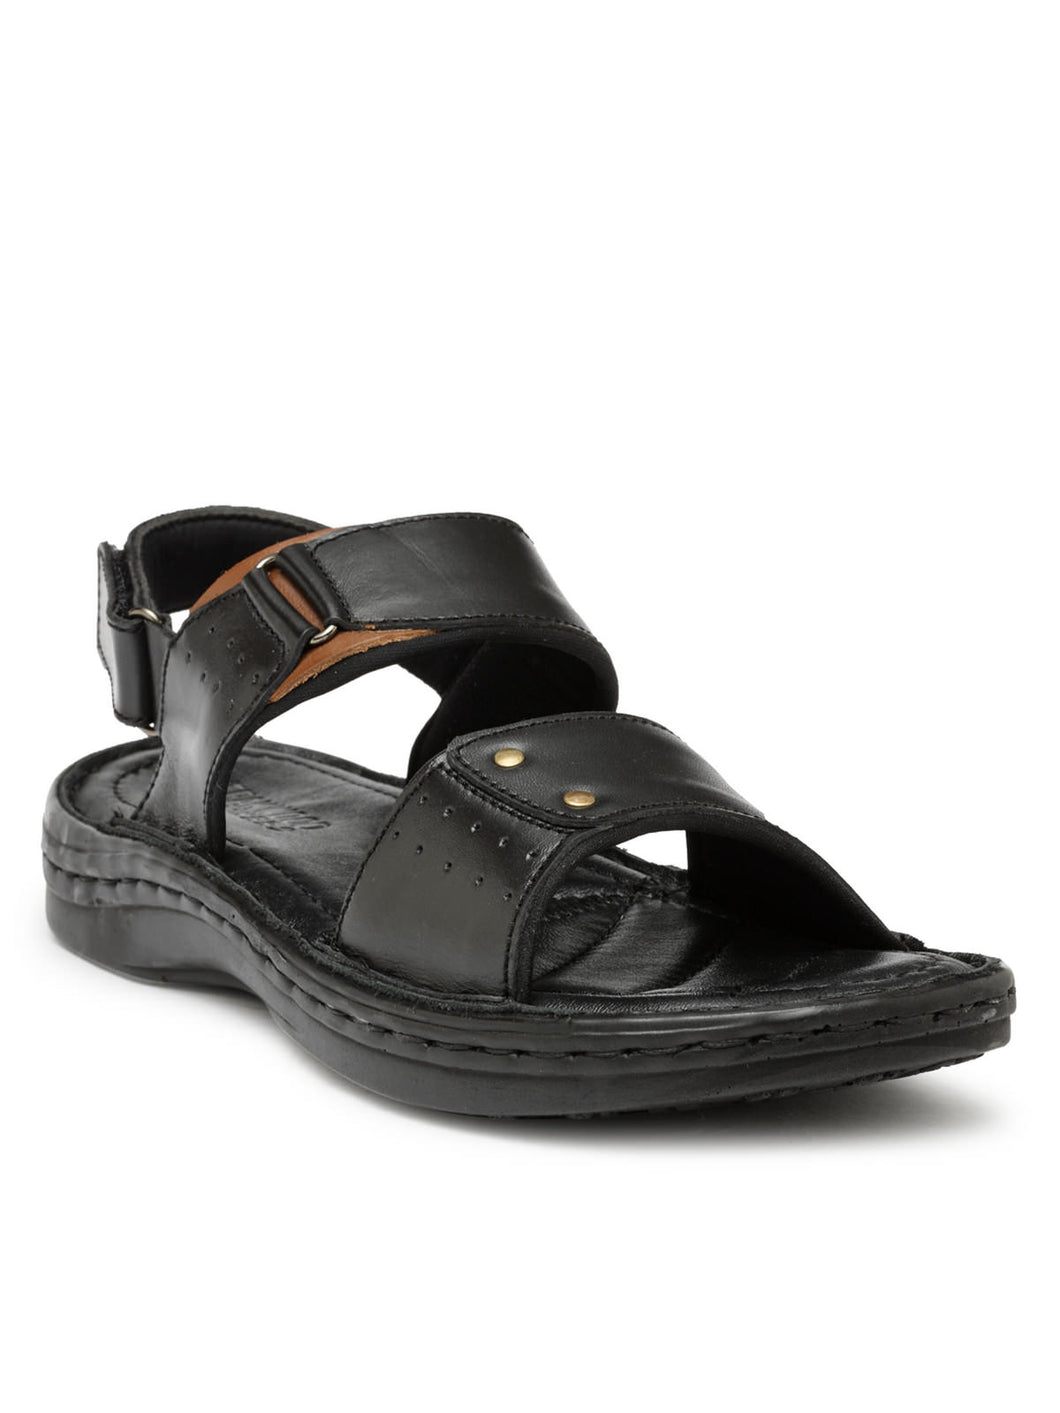 Teakwood Black Daily Wear Sandals